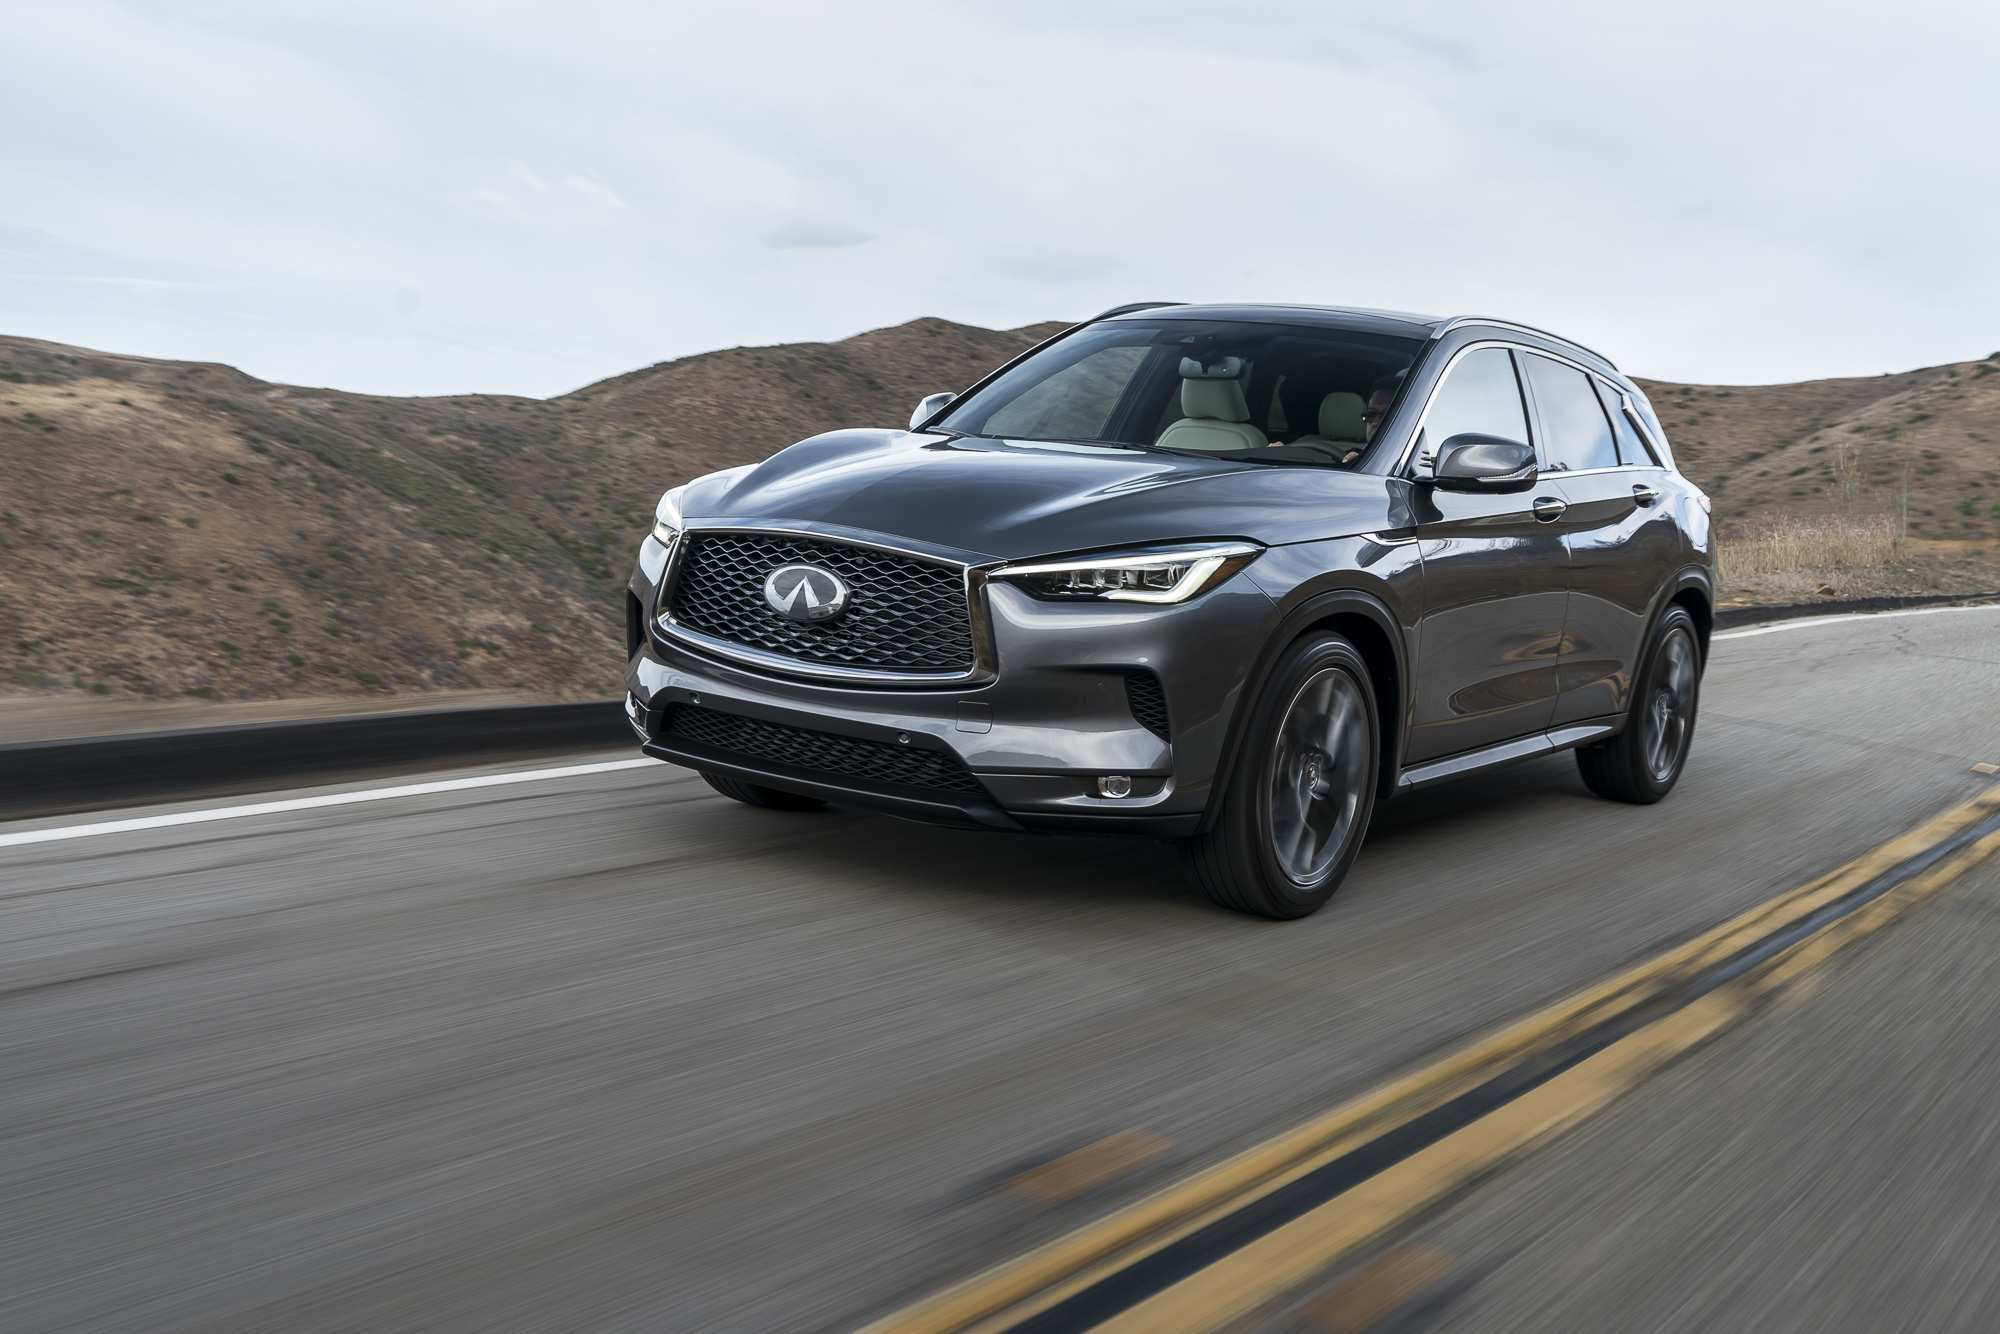 29 New 2019 Infiniti Qx50 Dimensions Spesification